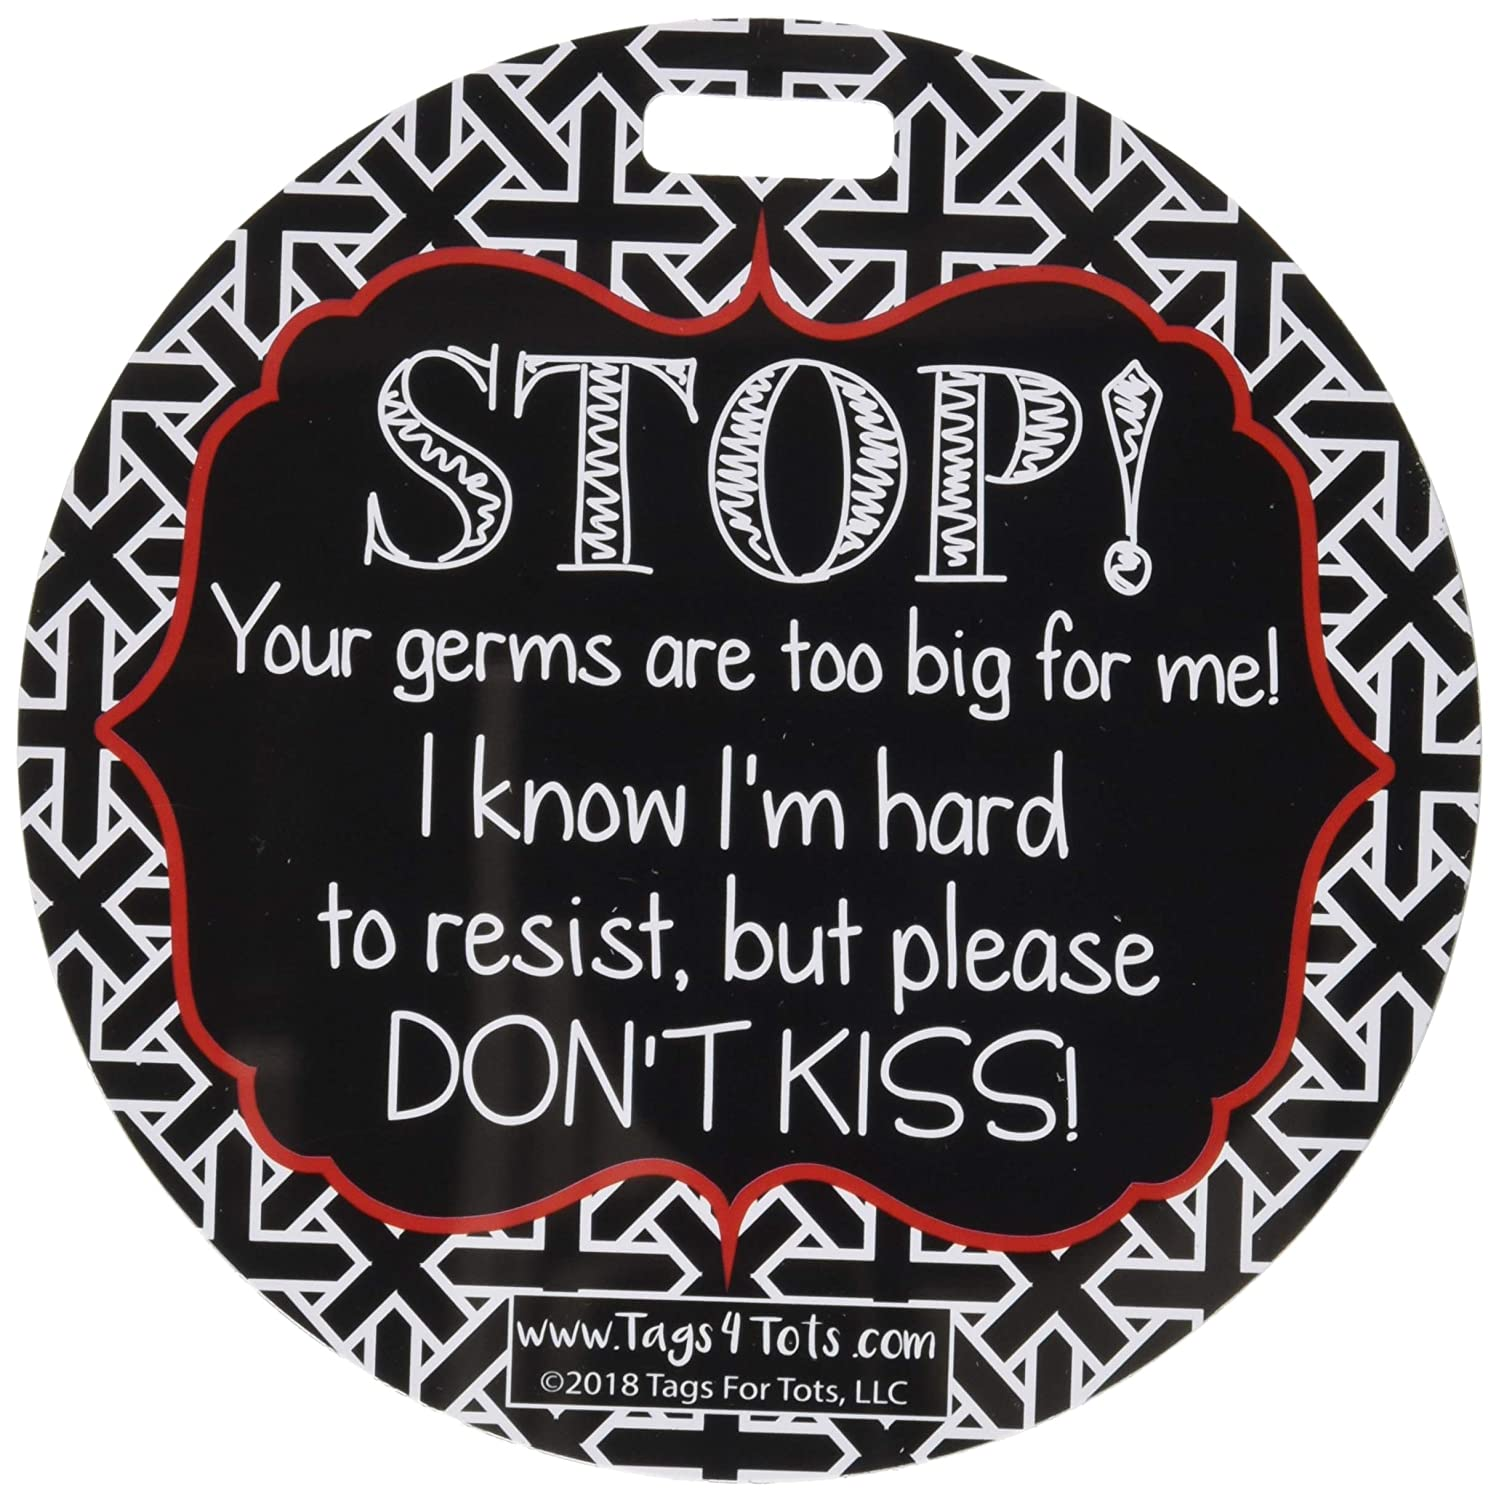 No Kissing Tag - Stop, Your Germs Are Too Big For Me, I Know I'm Hard To Resist But Please Don't Kiss (Baby Car Seat Tag, Baby Shower, Stroller Tag)